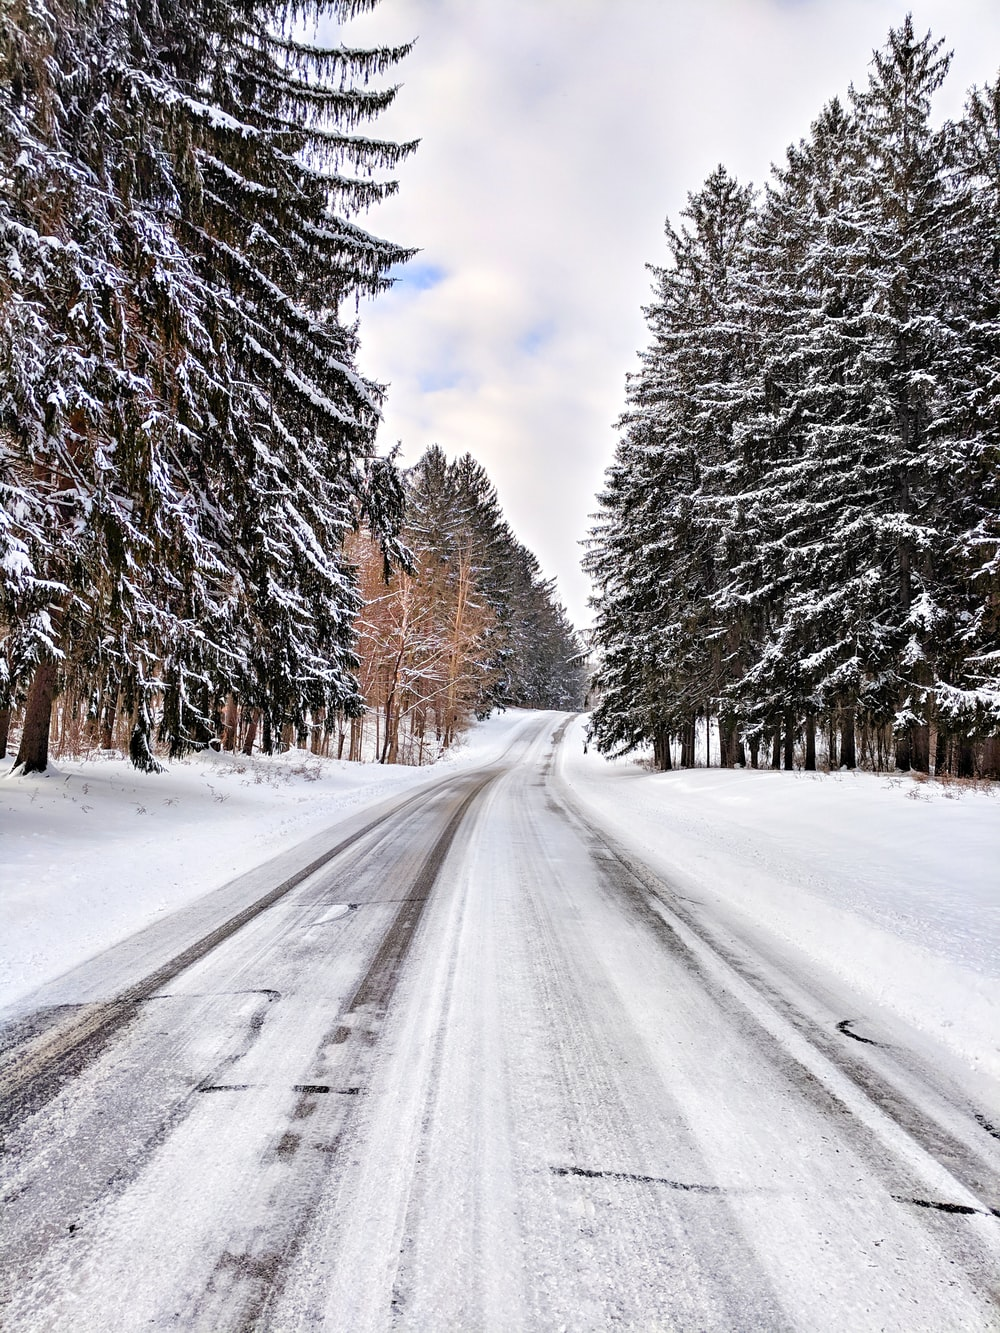 empty road between trees during winter at daytime